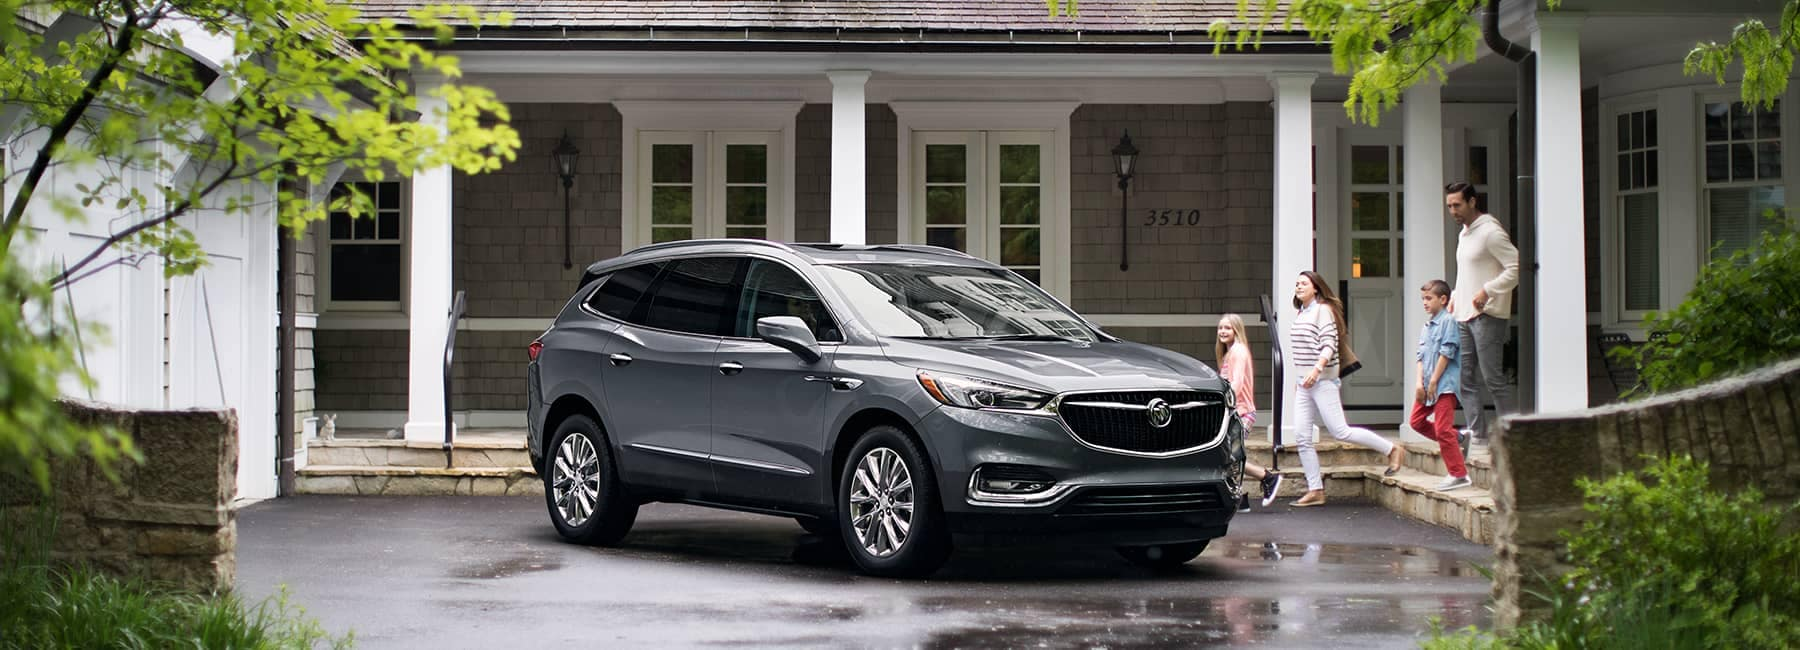 Grey 2020 Buick Enclave in Front of a House (1)